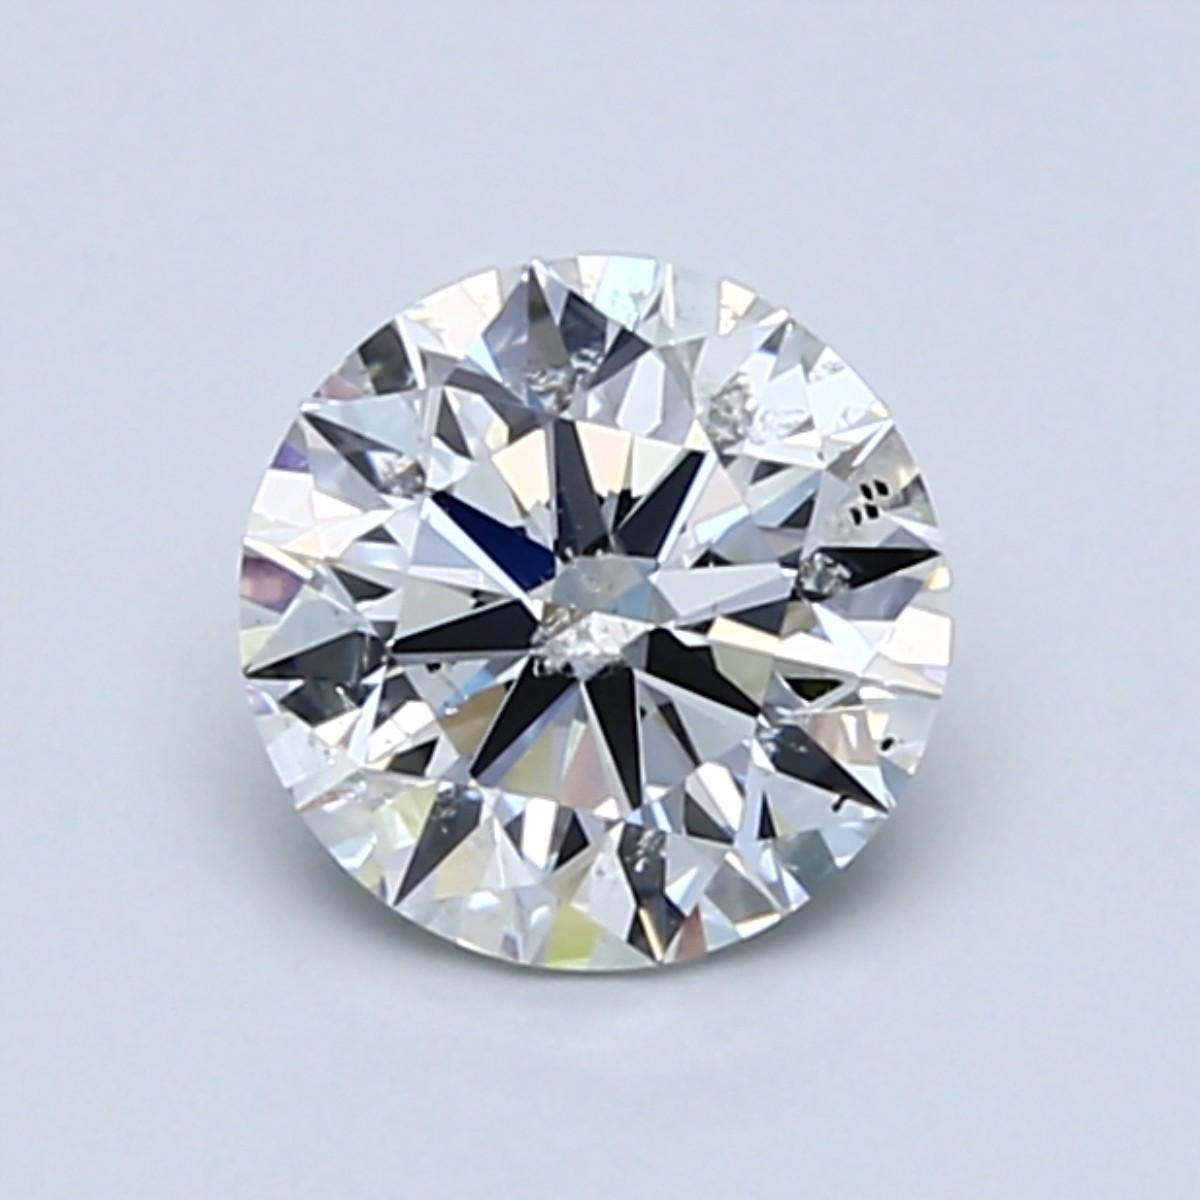 Diamond with large clear inclusion on the center table